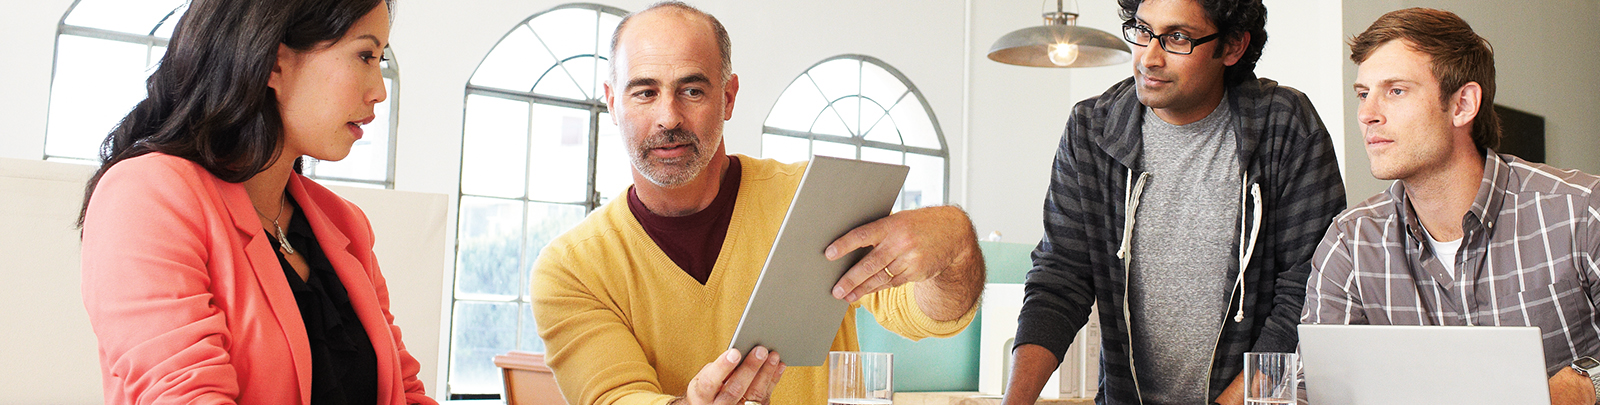 A man is showing his tablet to his colleagues.